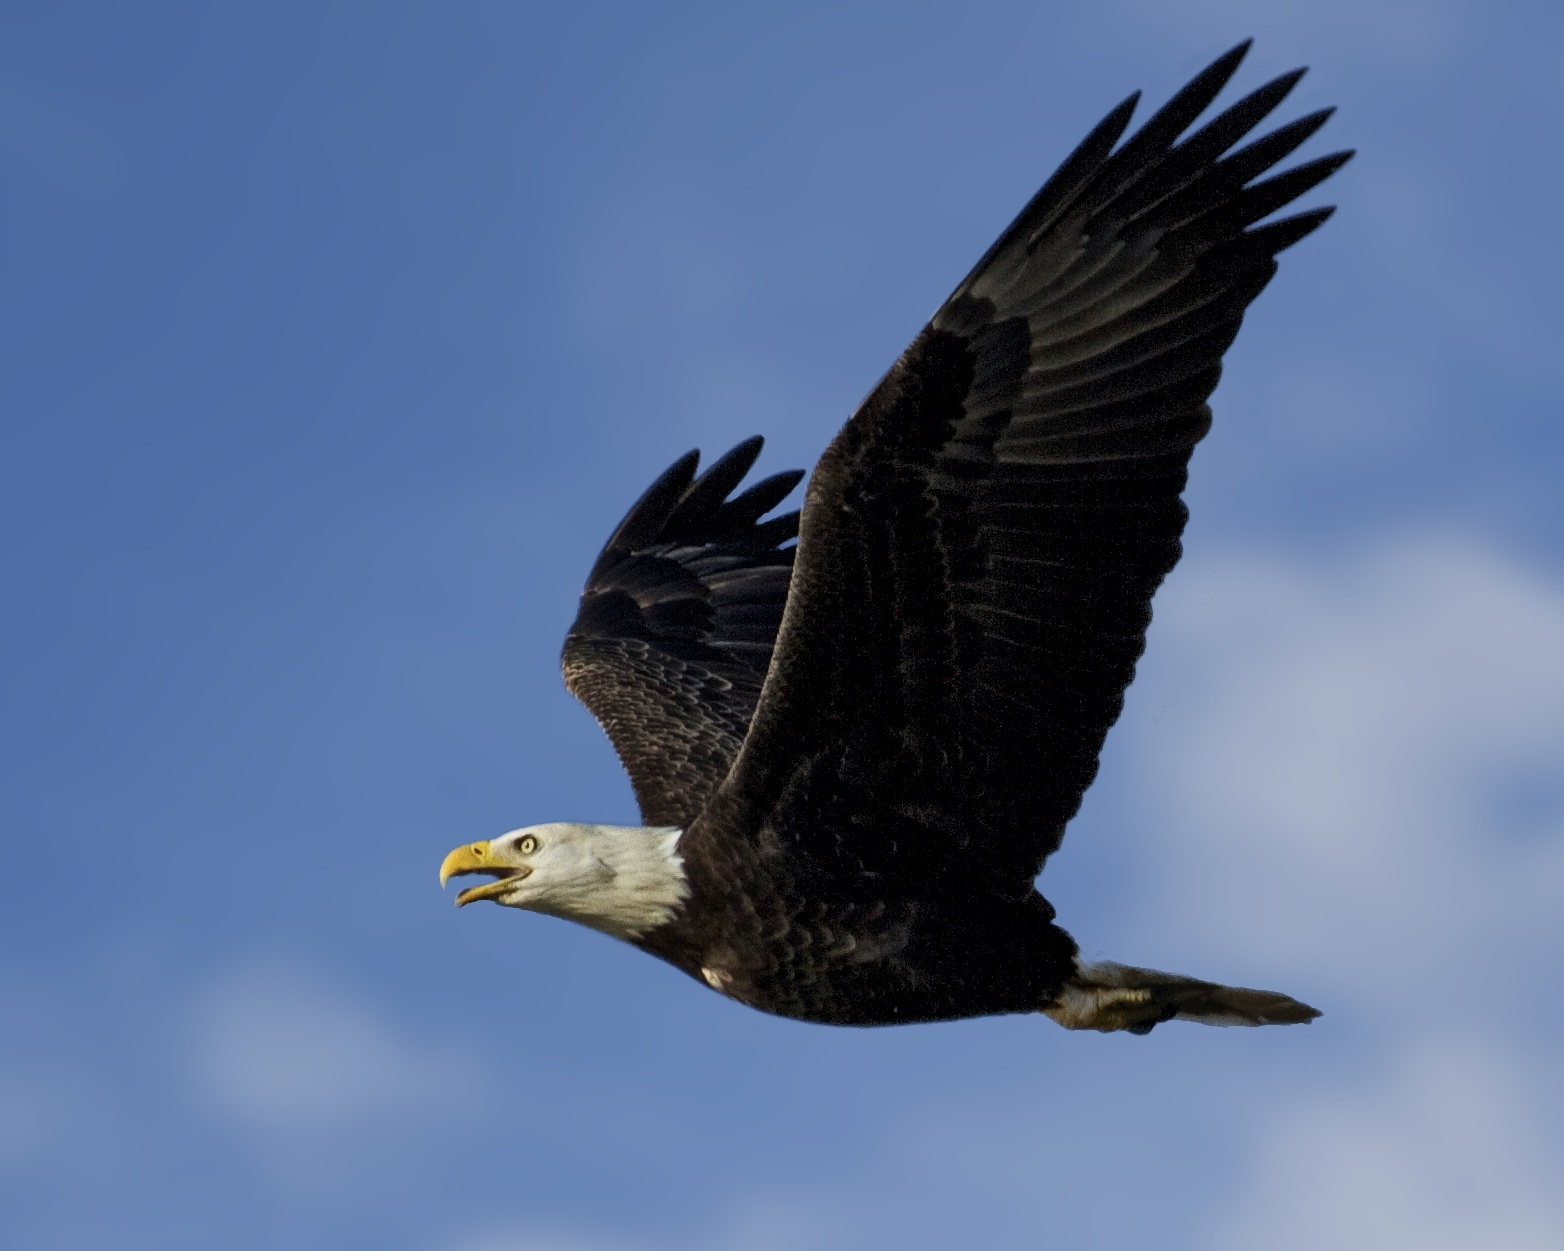 No bird is more majestic to me than an Eagle in flight.